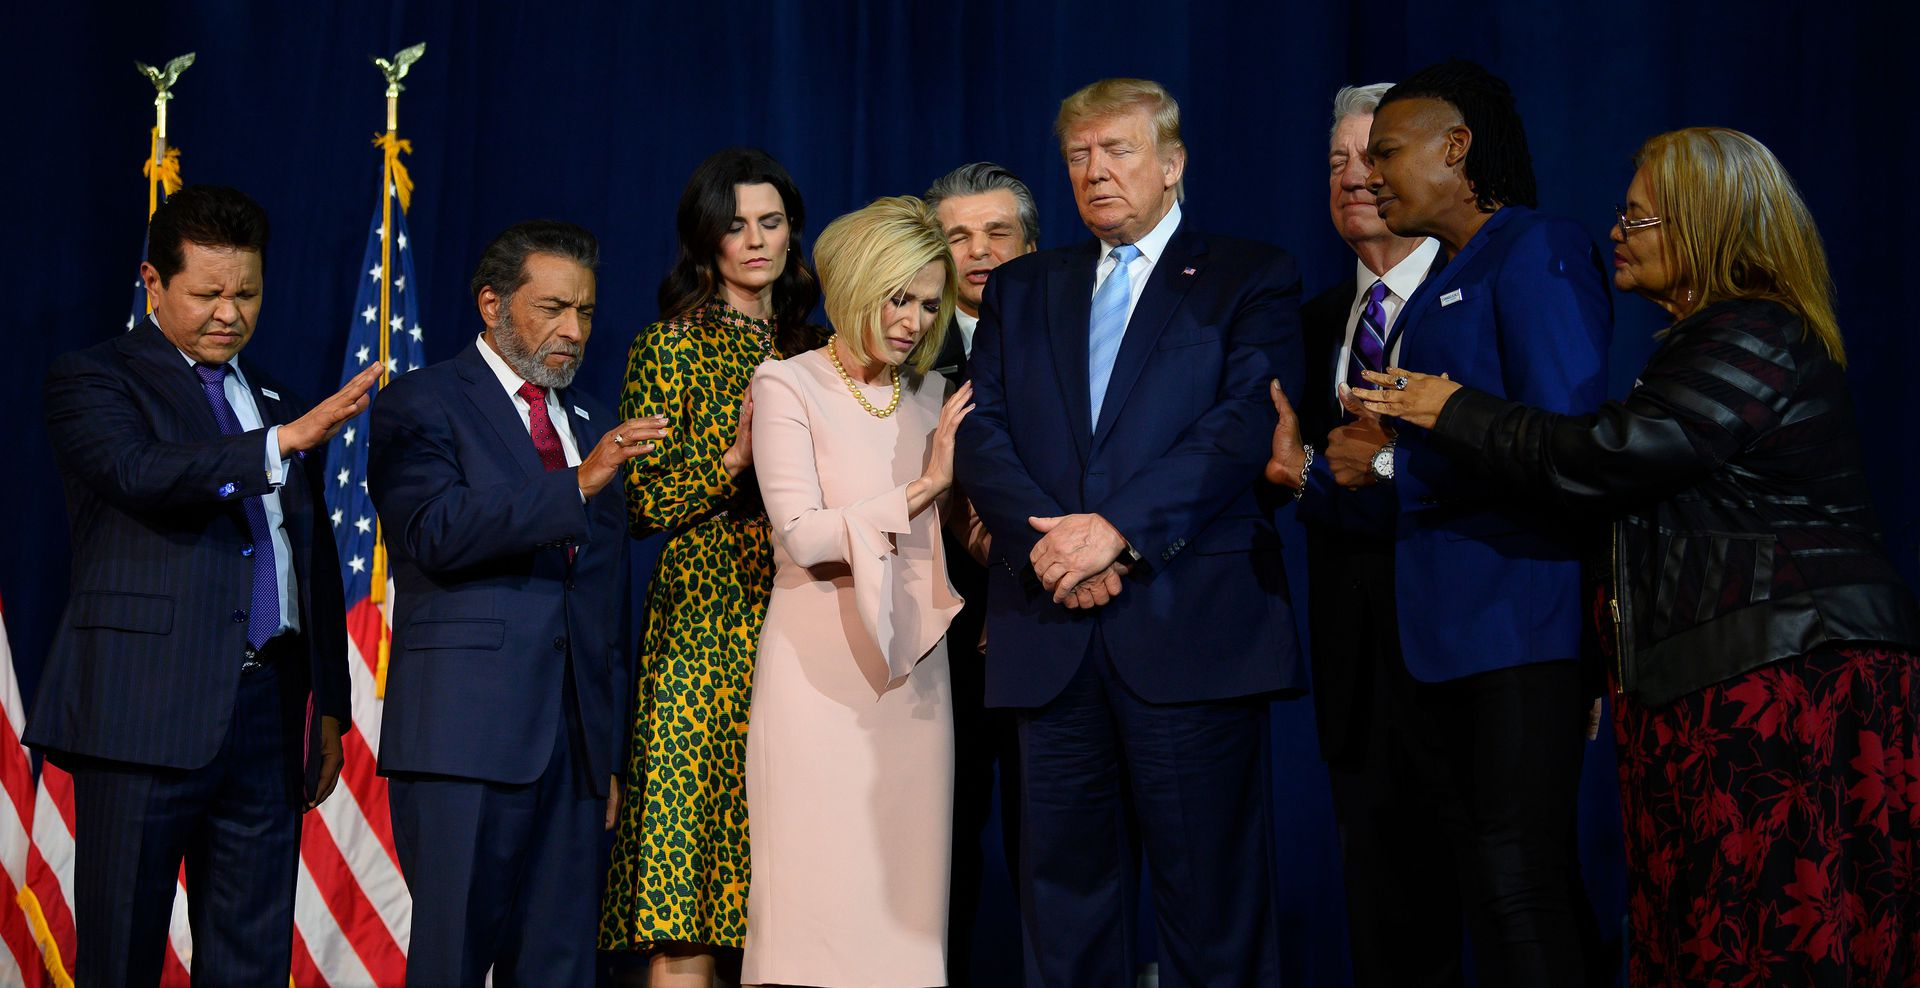 Trump touts record at megachurch event to boost evangelical following